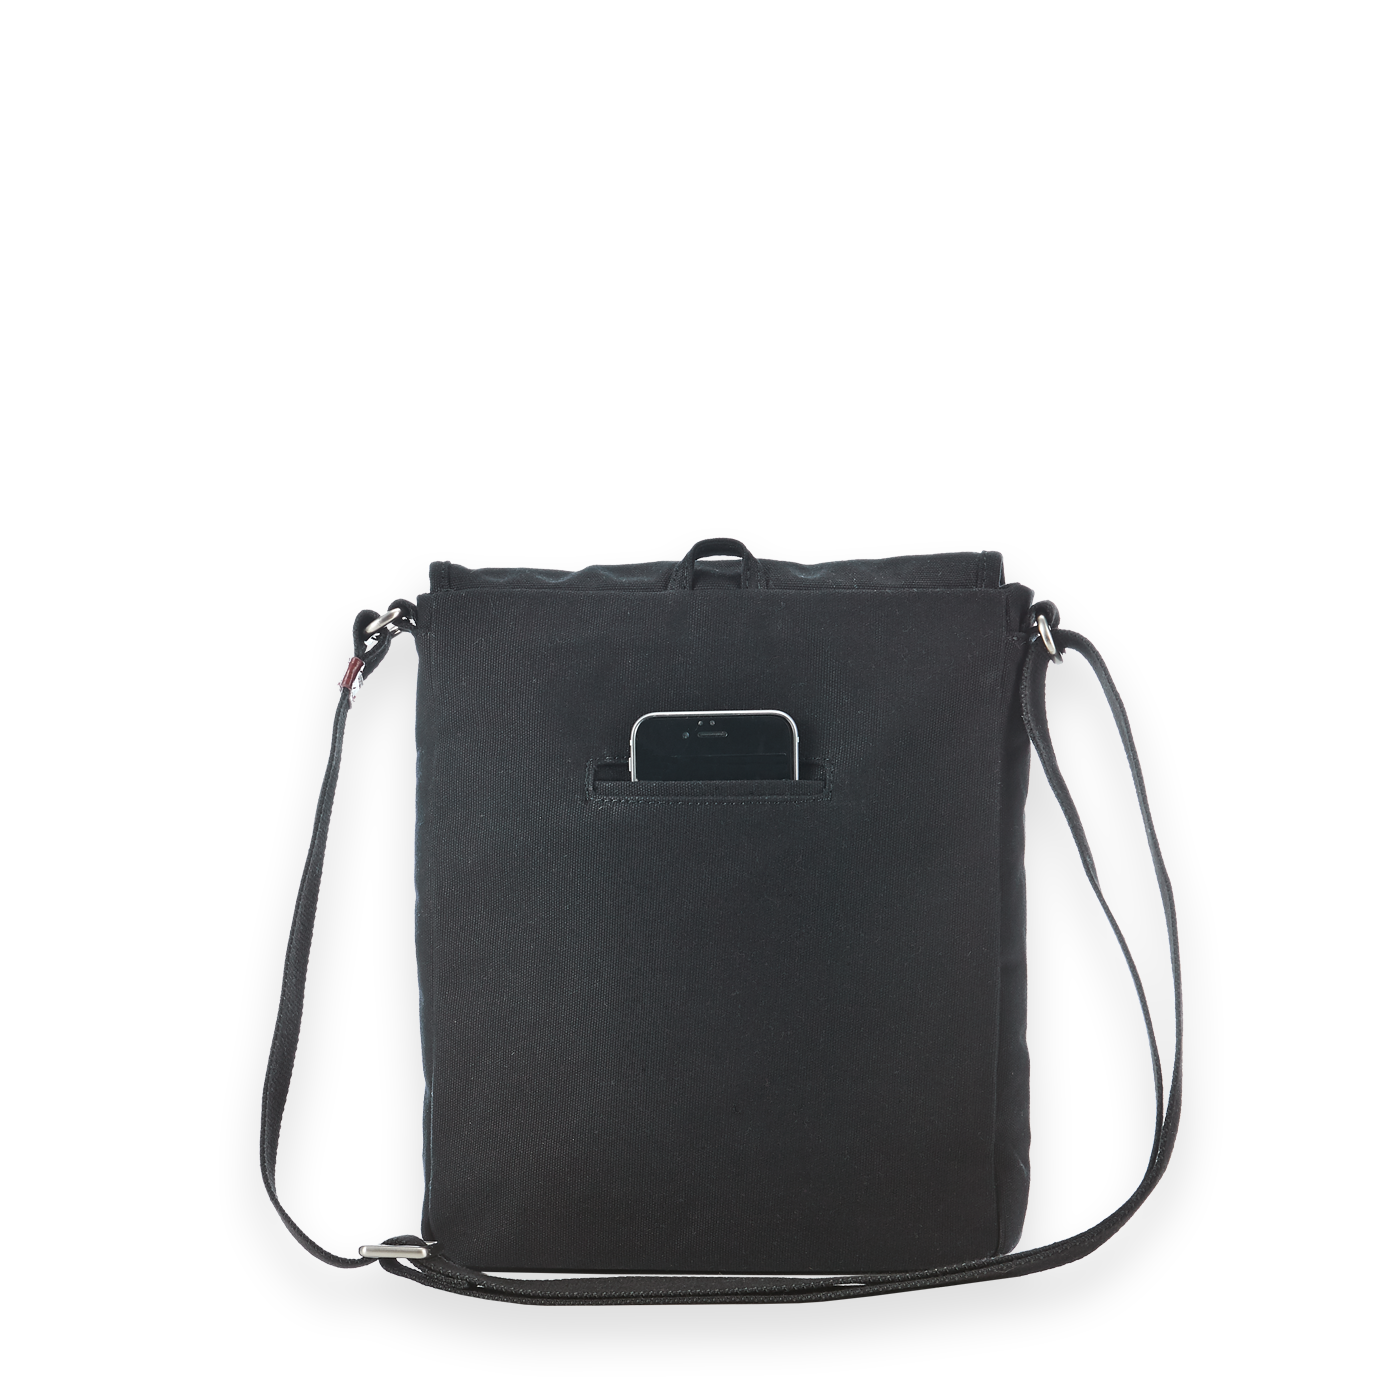 Toffee Osaka Satchel Bag With padded compartment for iPad//tablets including 10.5-inch iPad Pro.